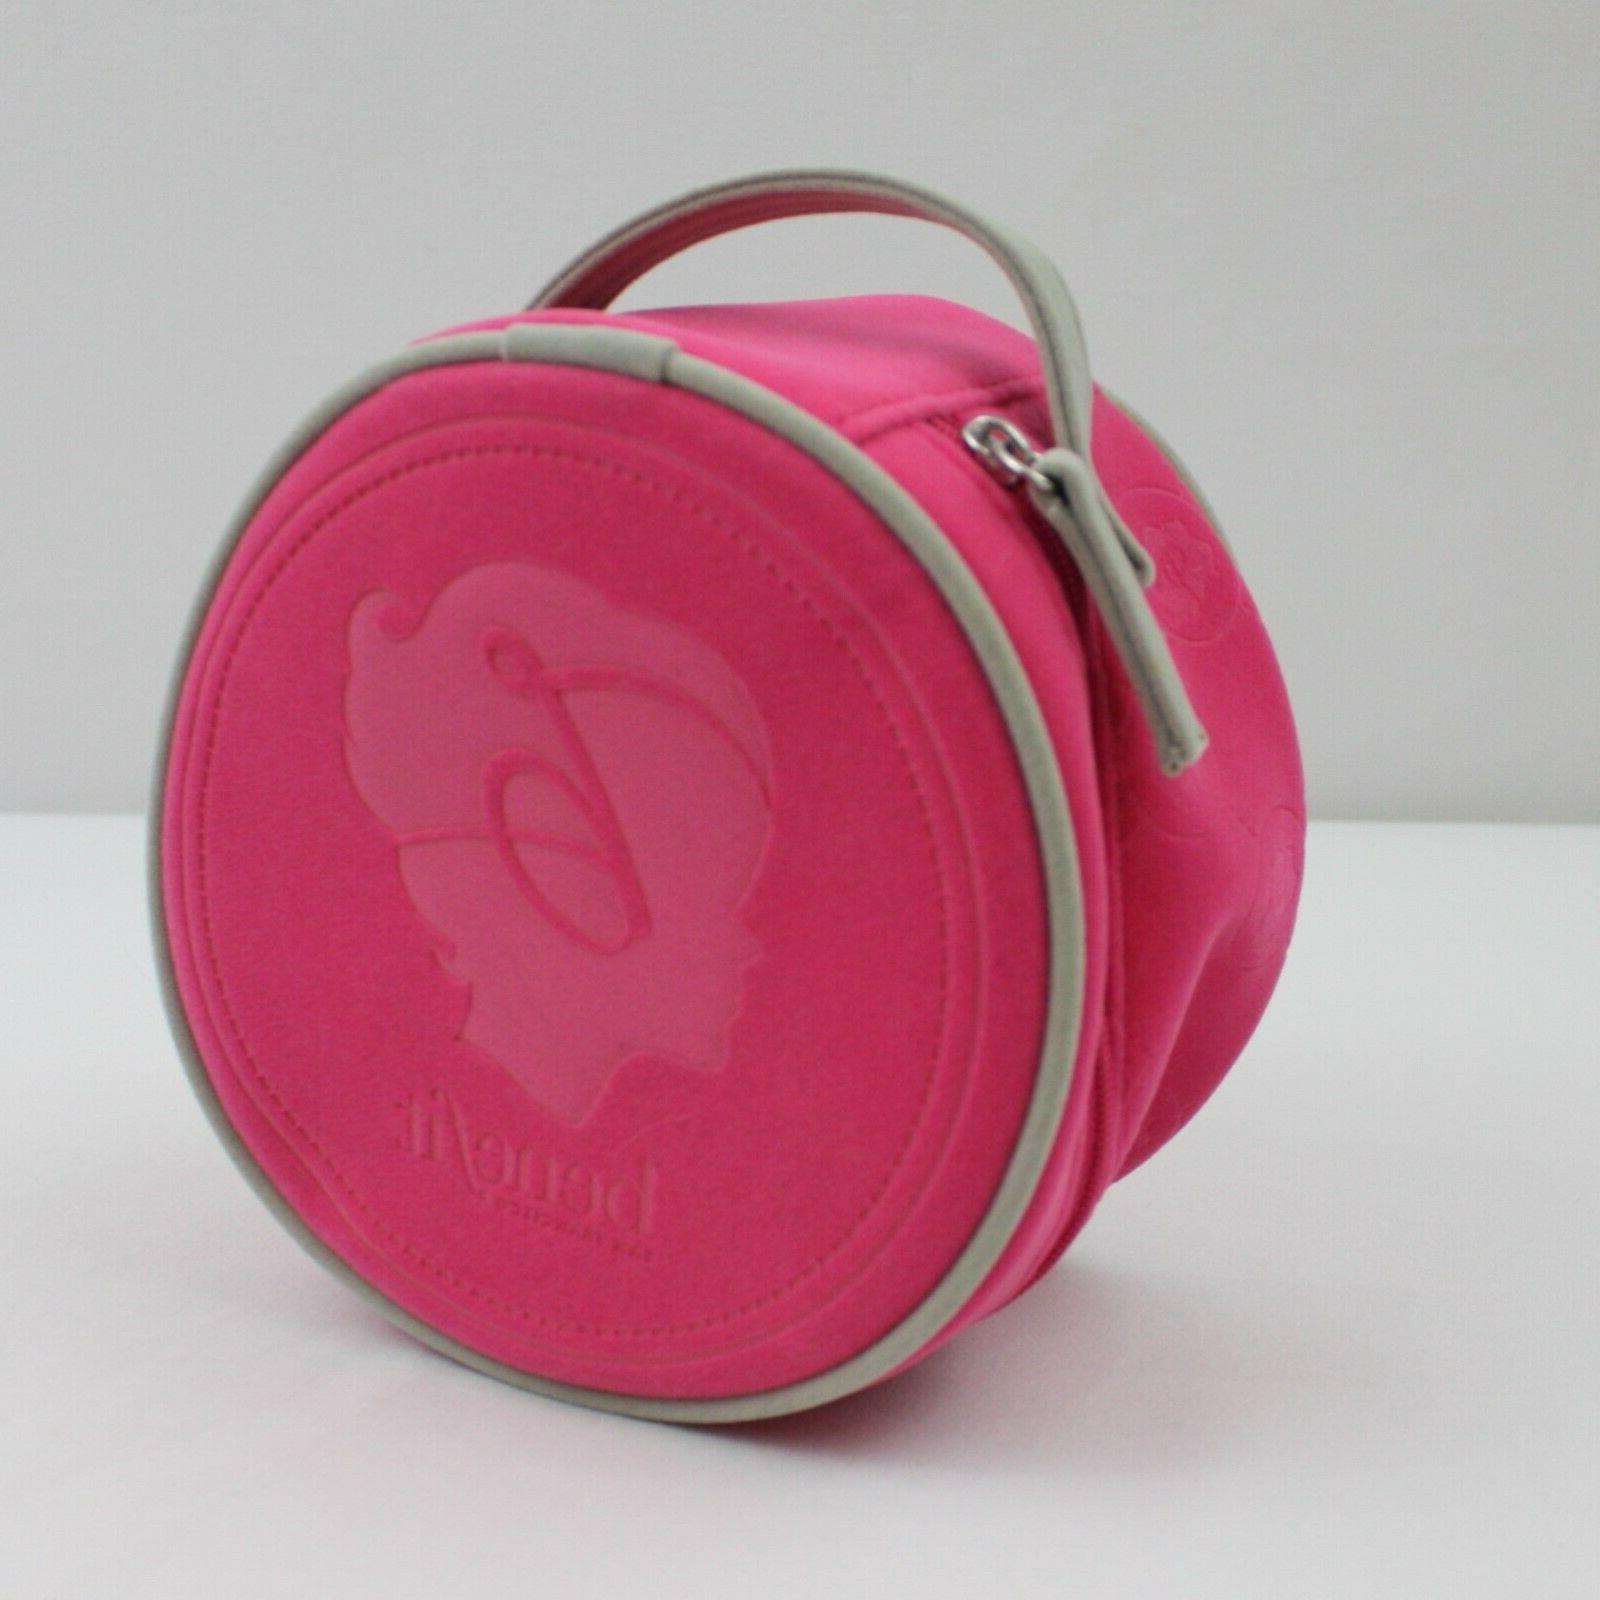 Benefit Round Makeup Cosmetic Pouch